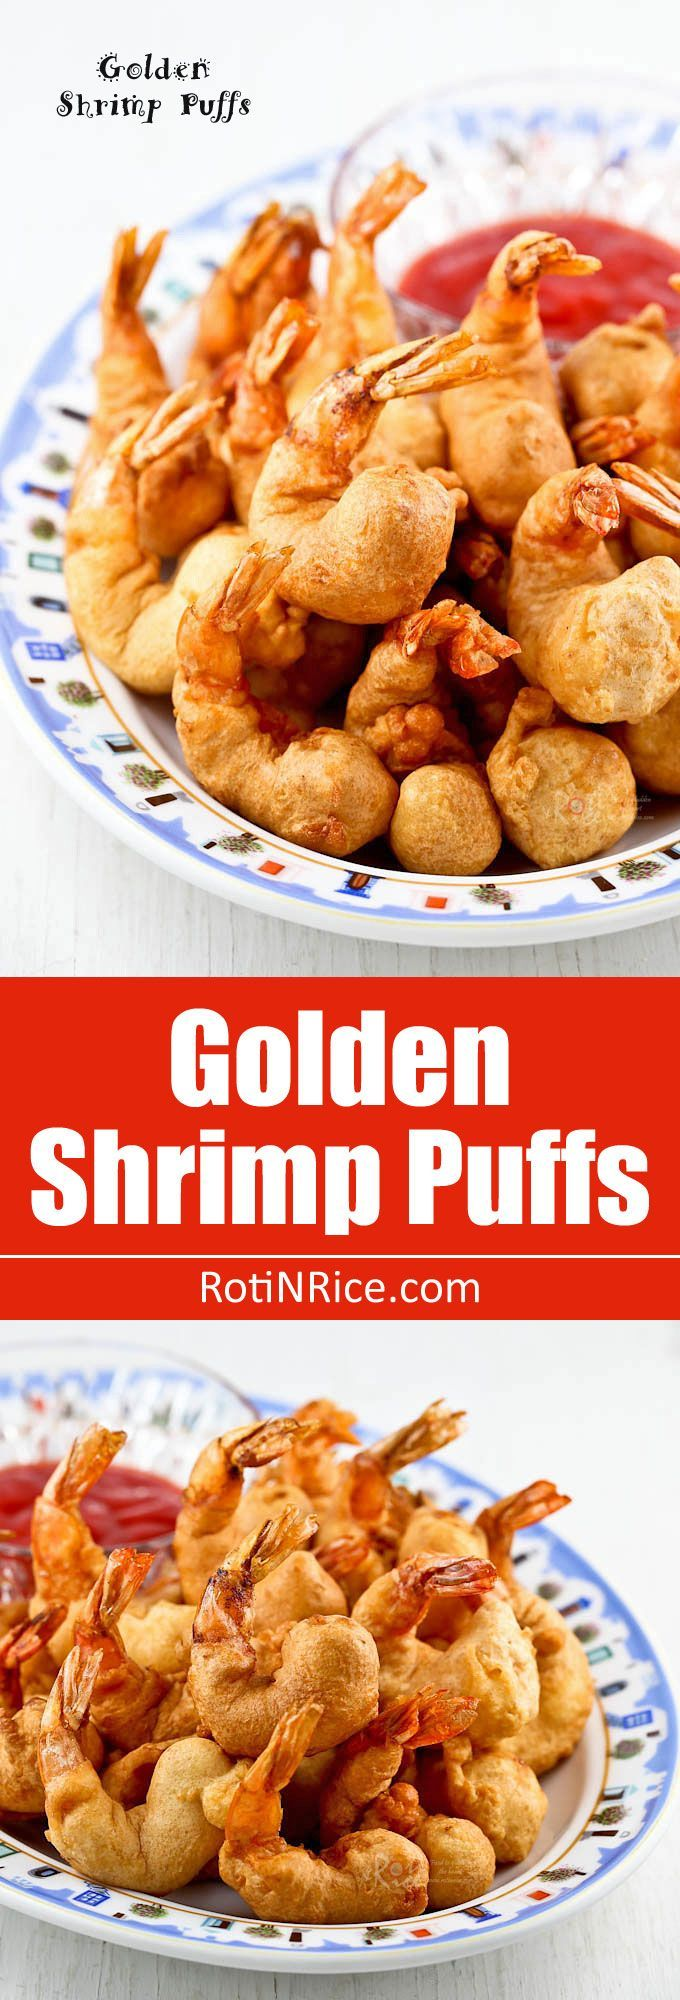 Quick and easy deep fried Golden Shrimp Puffs. Delicious served with sweet chili sauce. Perfect as an appetizer or a side dish.   http://RotiNRice.com